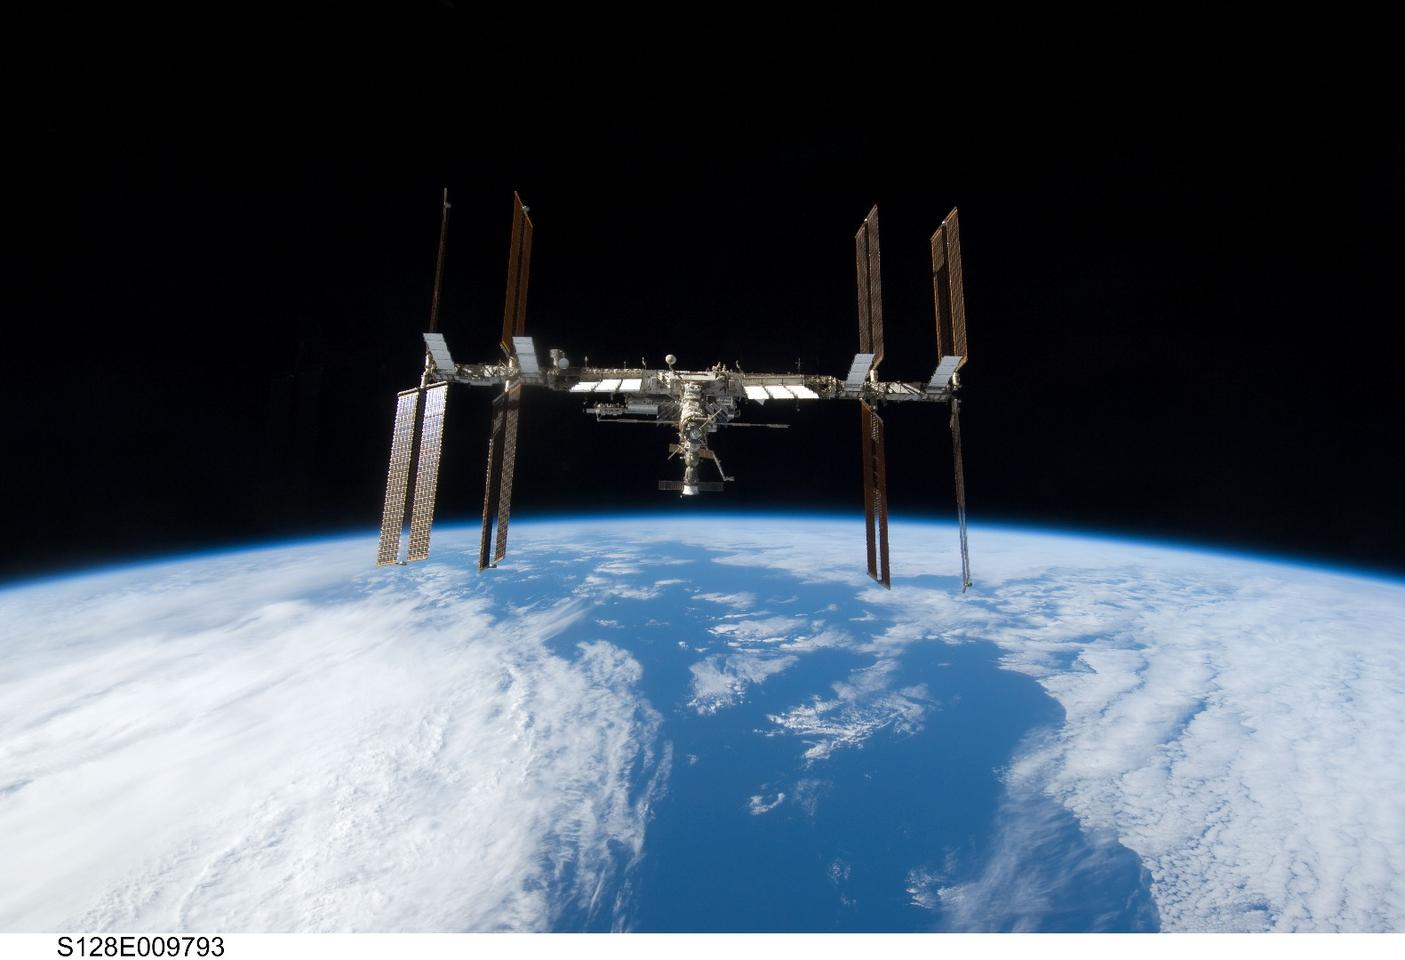 The International SpaceStation as imaged from the Space Shuttle Discovery in 2009